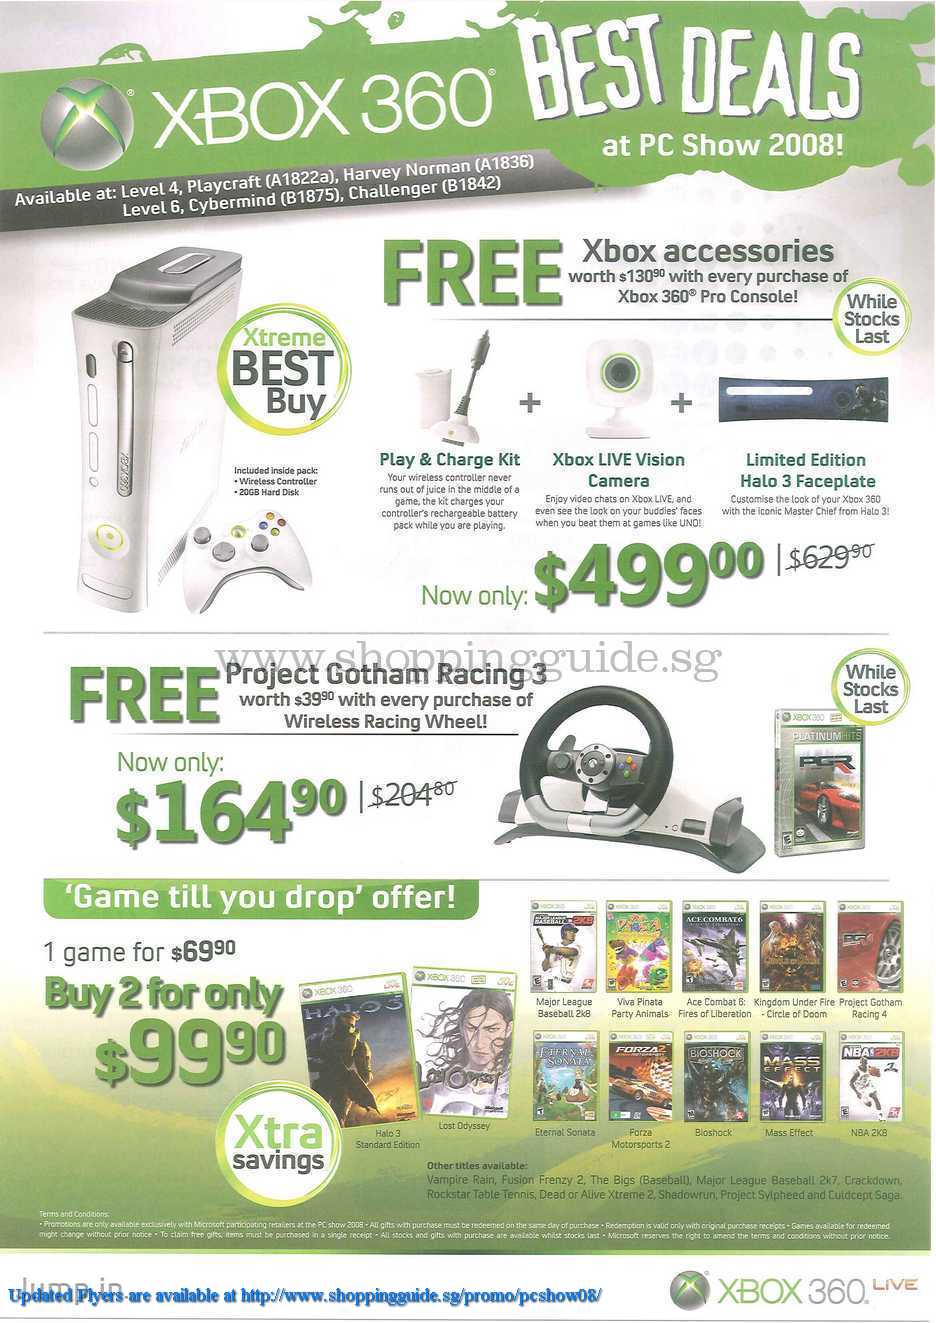 PC Show 2008 price list image brochure of Xbox 360 ShoppingGuide.SG-PcShow08-063